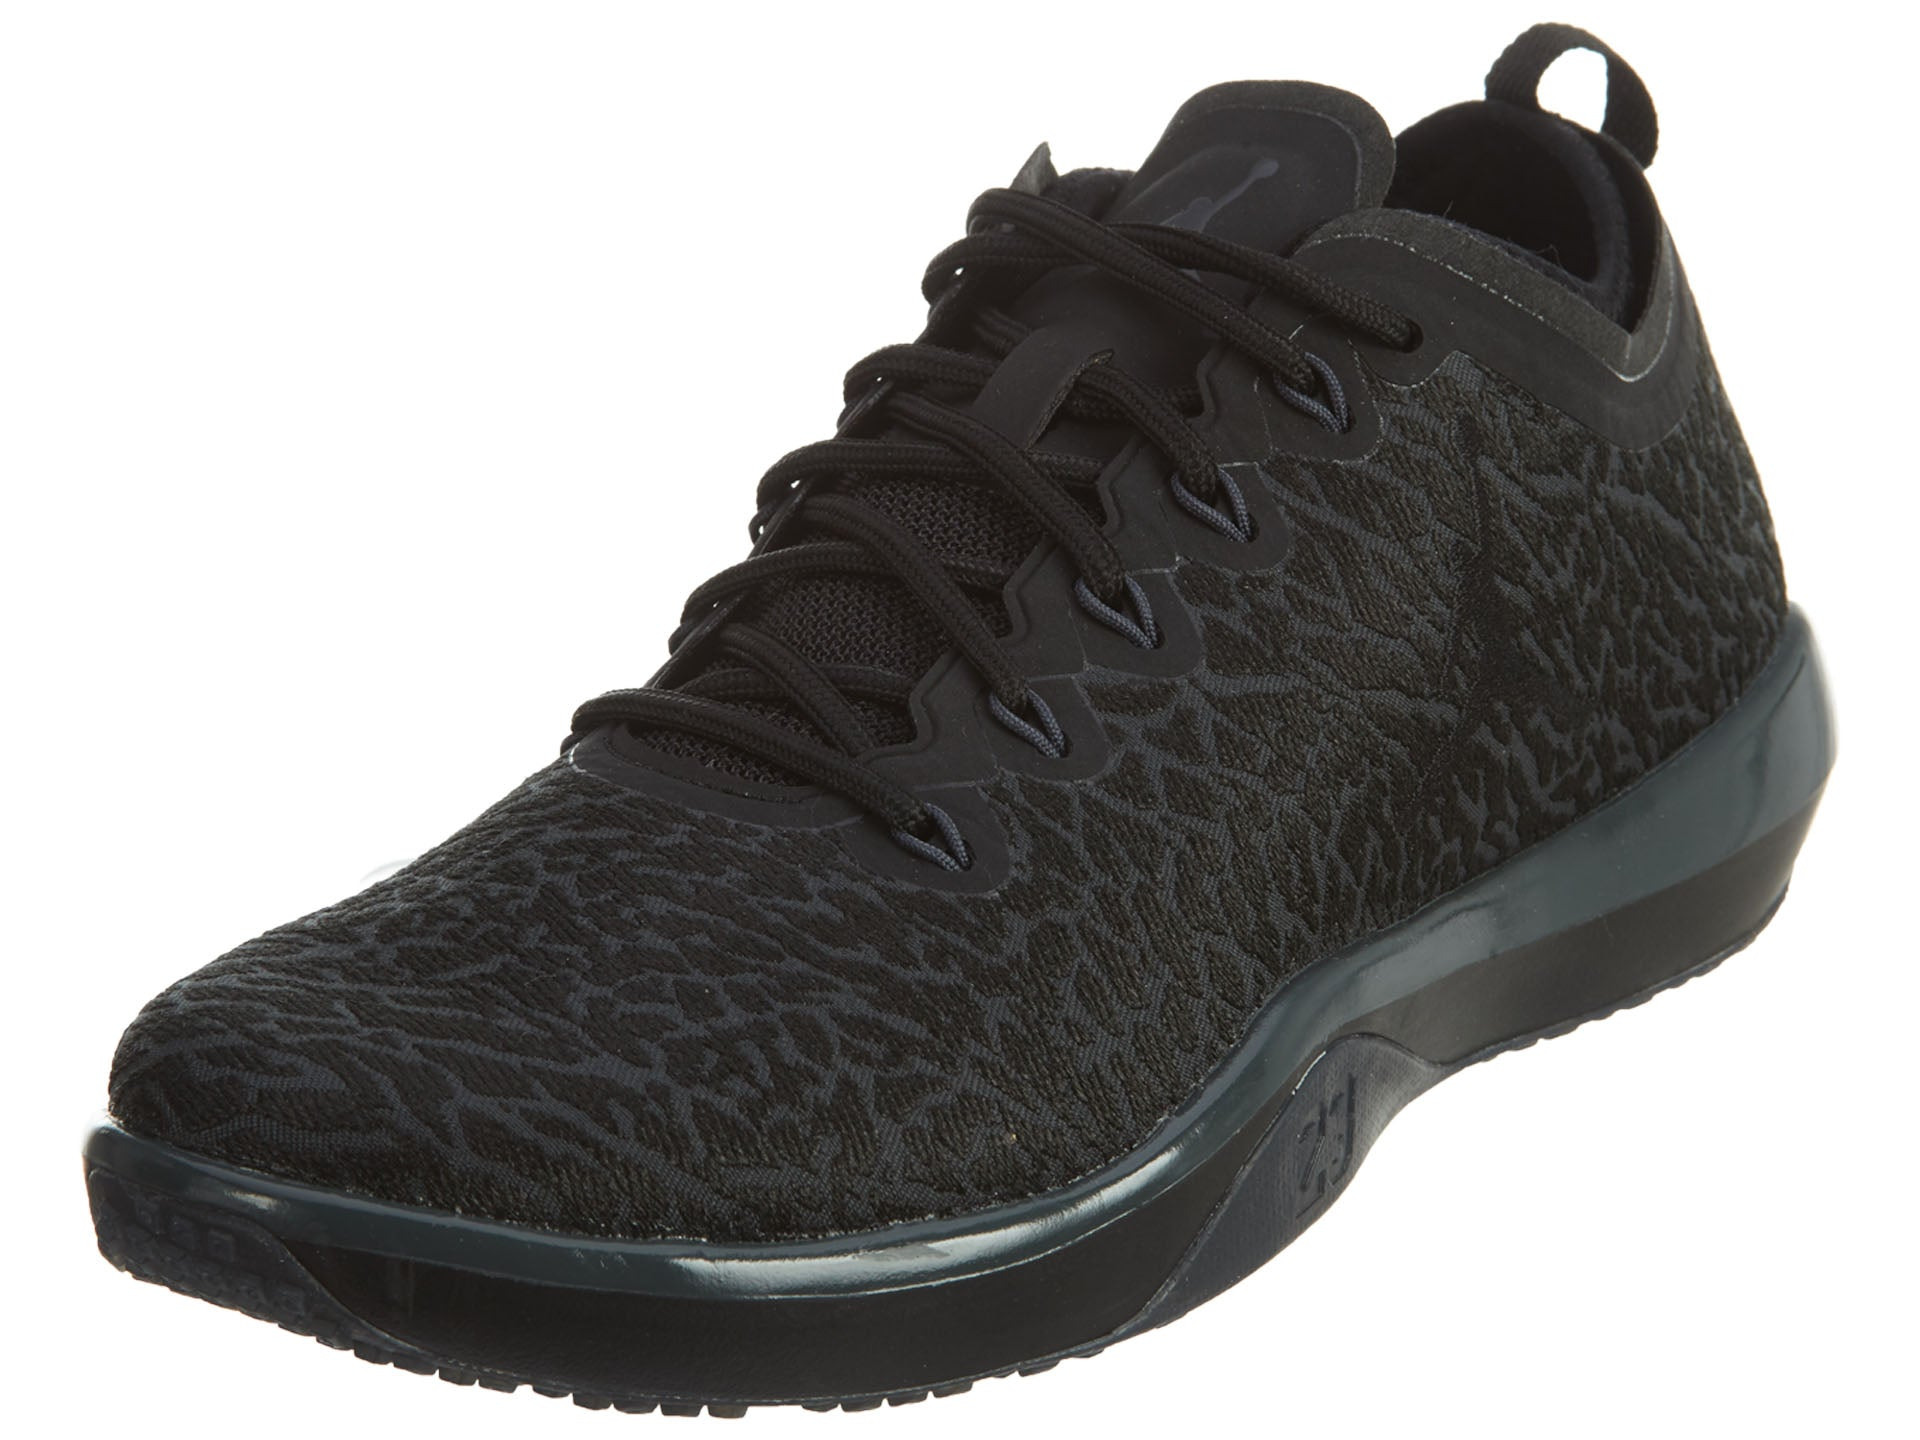 8c60f93522cc28 Jordan Trainer 1 Low Mens Style   845403